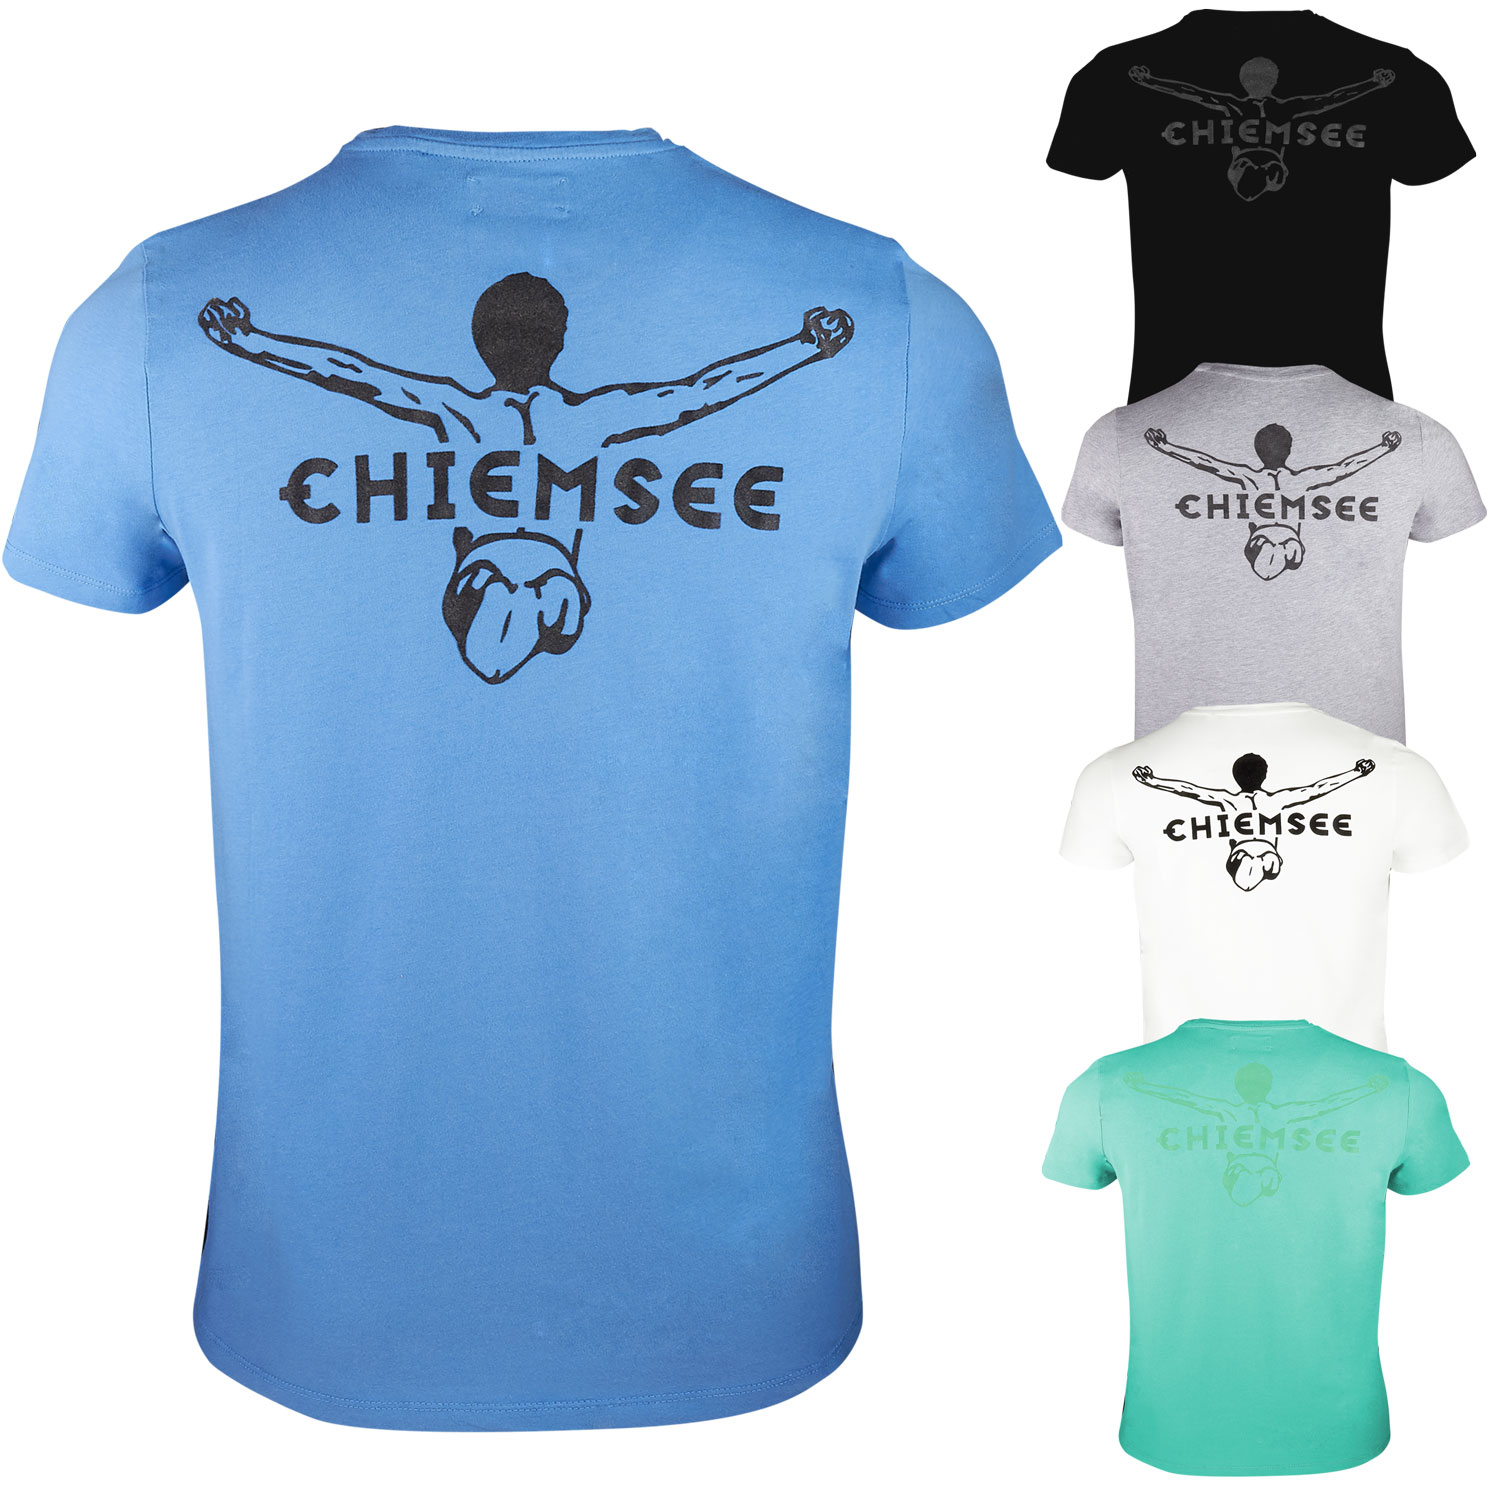 Chiemsee Bettwäsche Chiemsee Herren Shirt Manhatten T Shirt Herren T Shirts